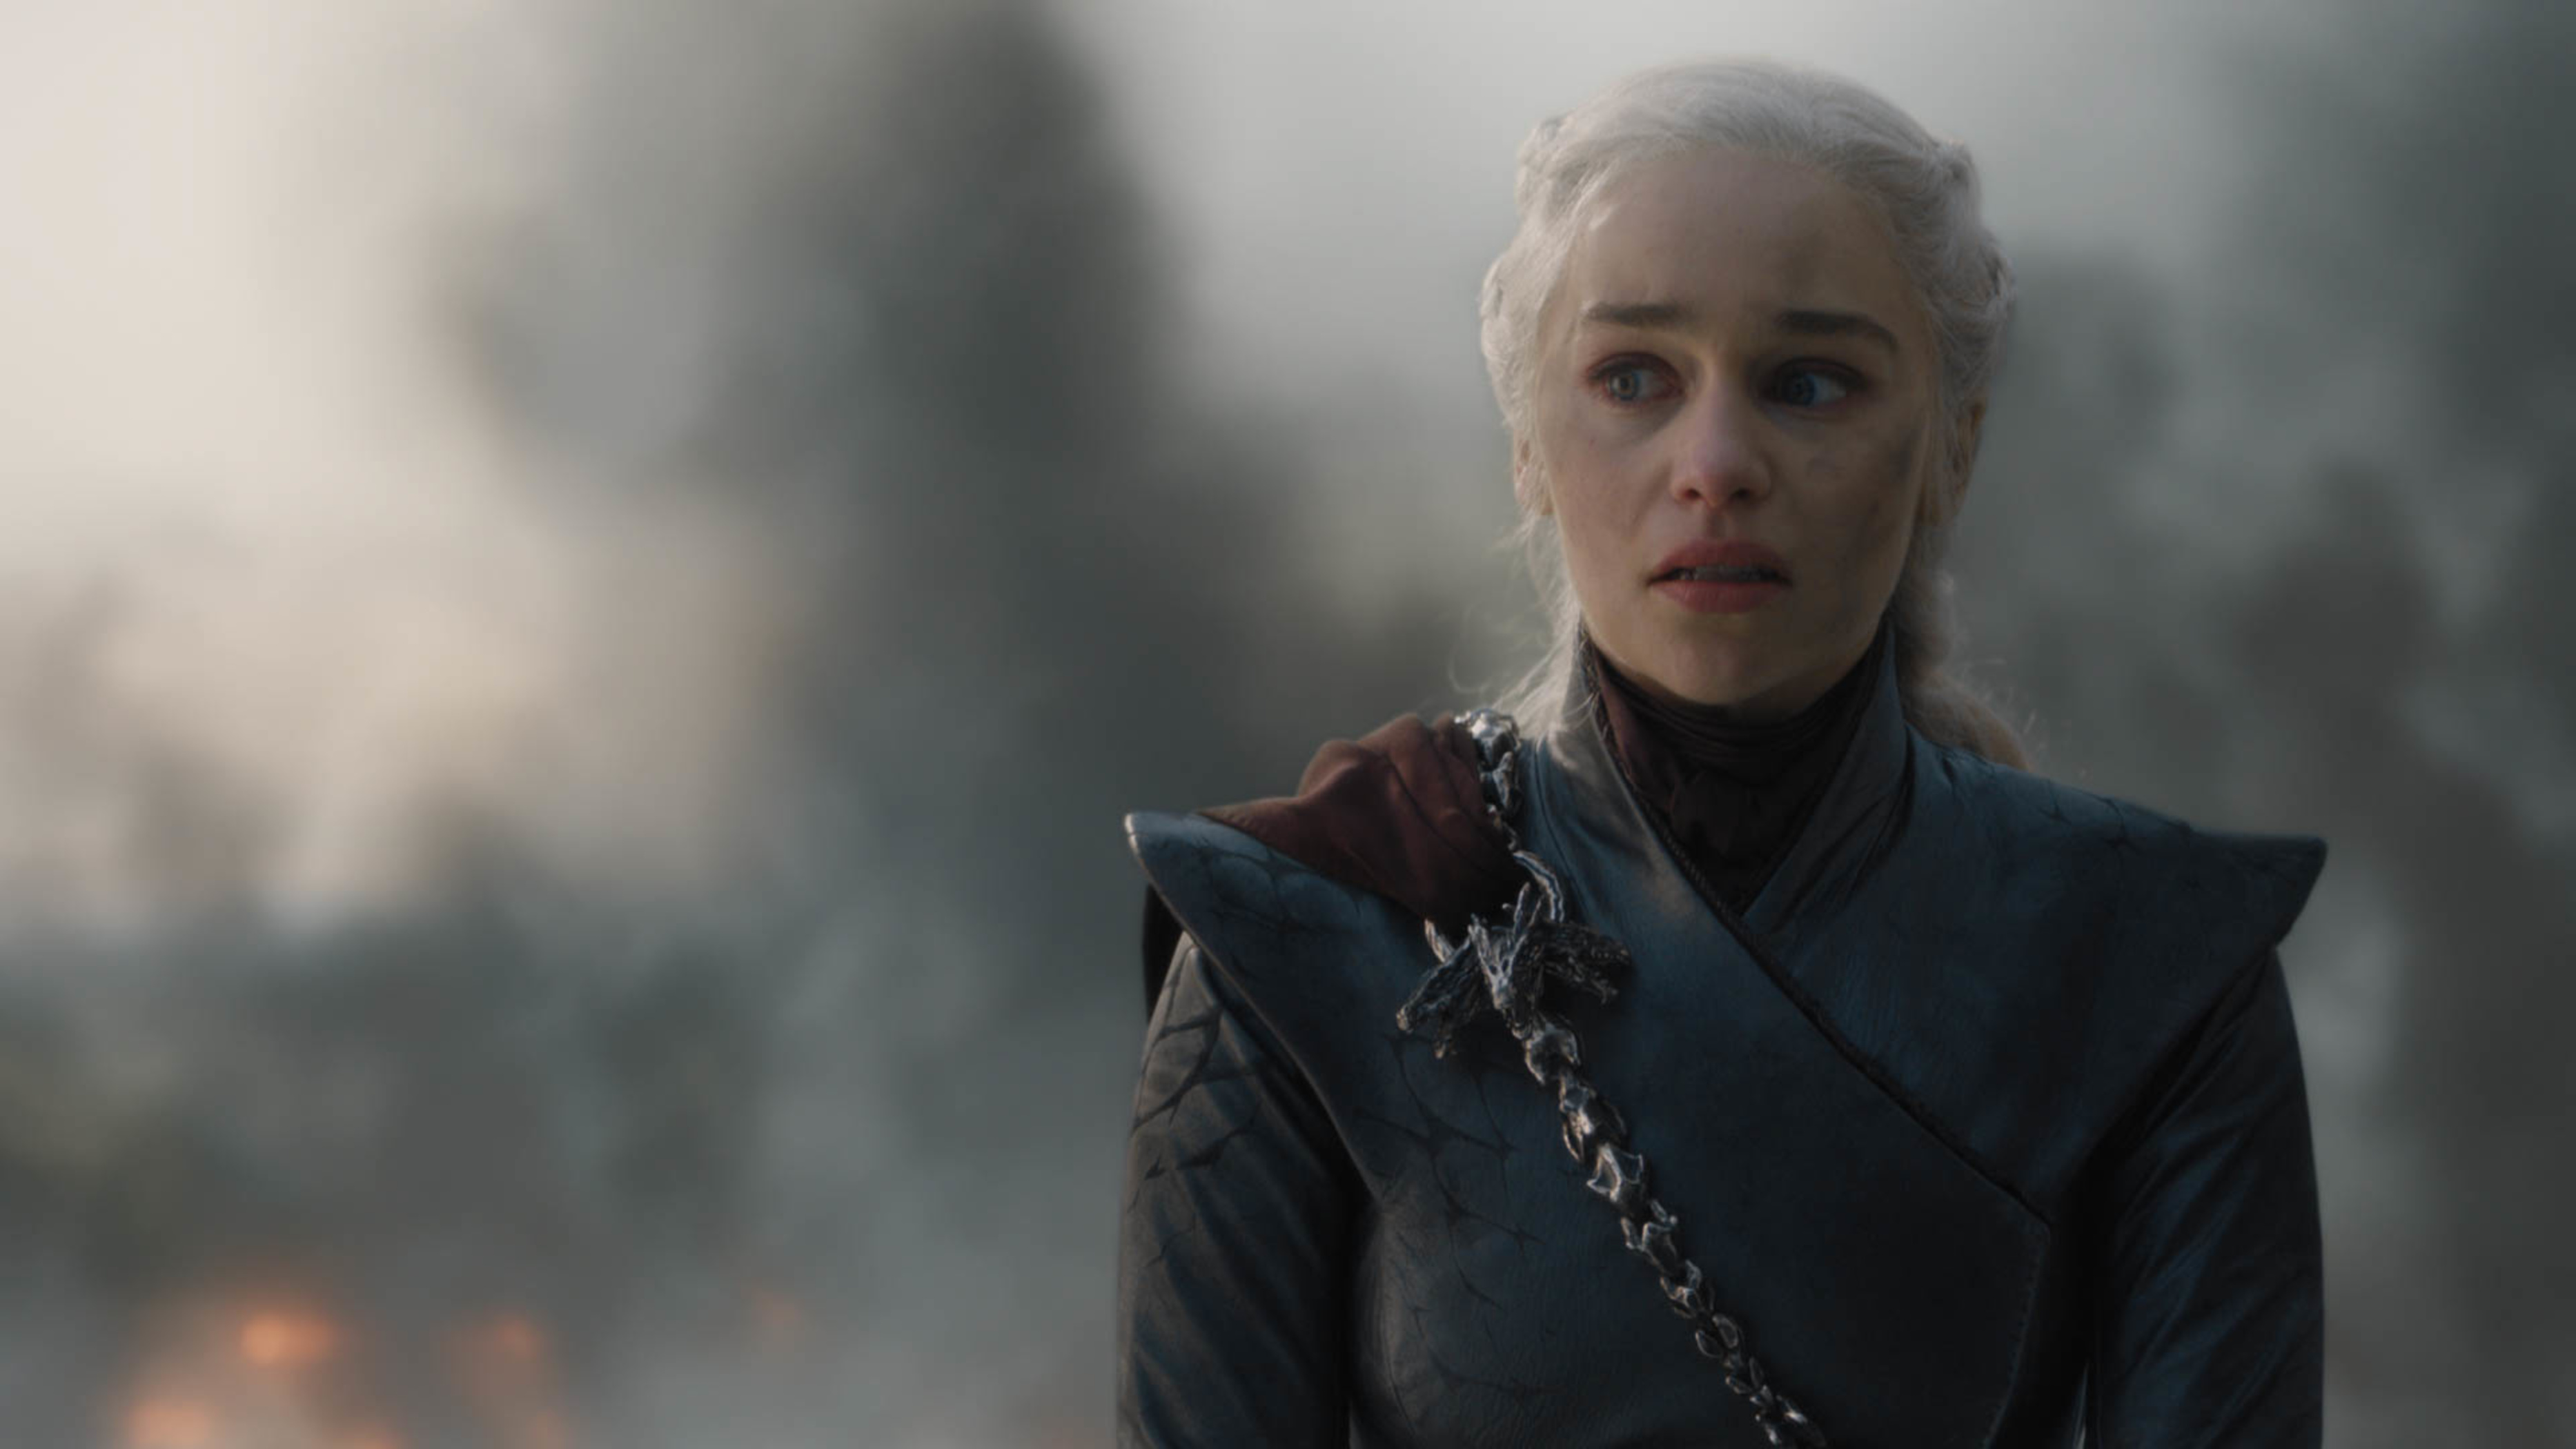 Game of Thrones' Daenerys takes a turn in season 8 episode 5